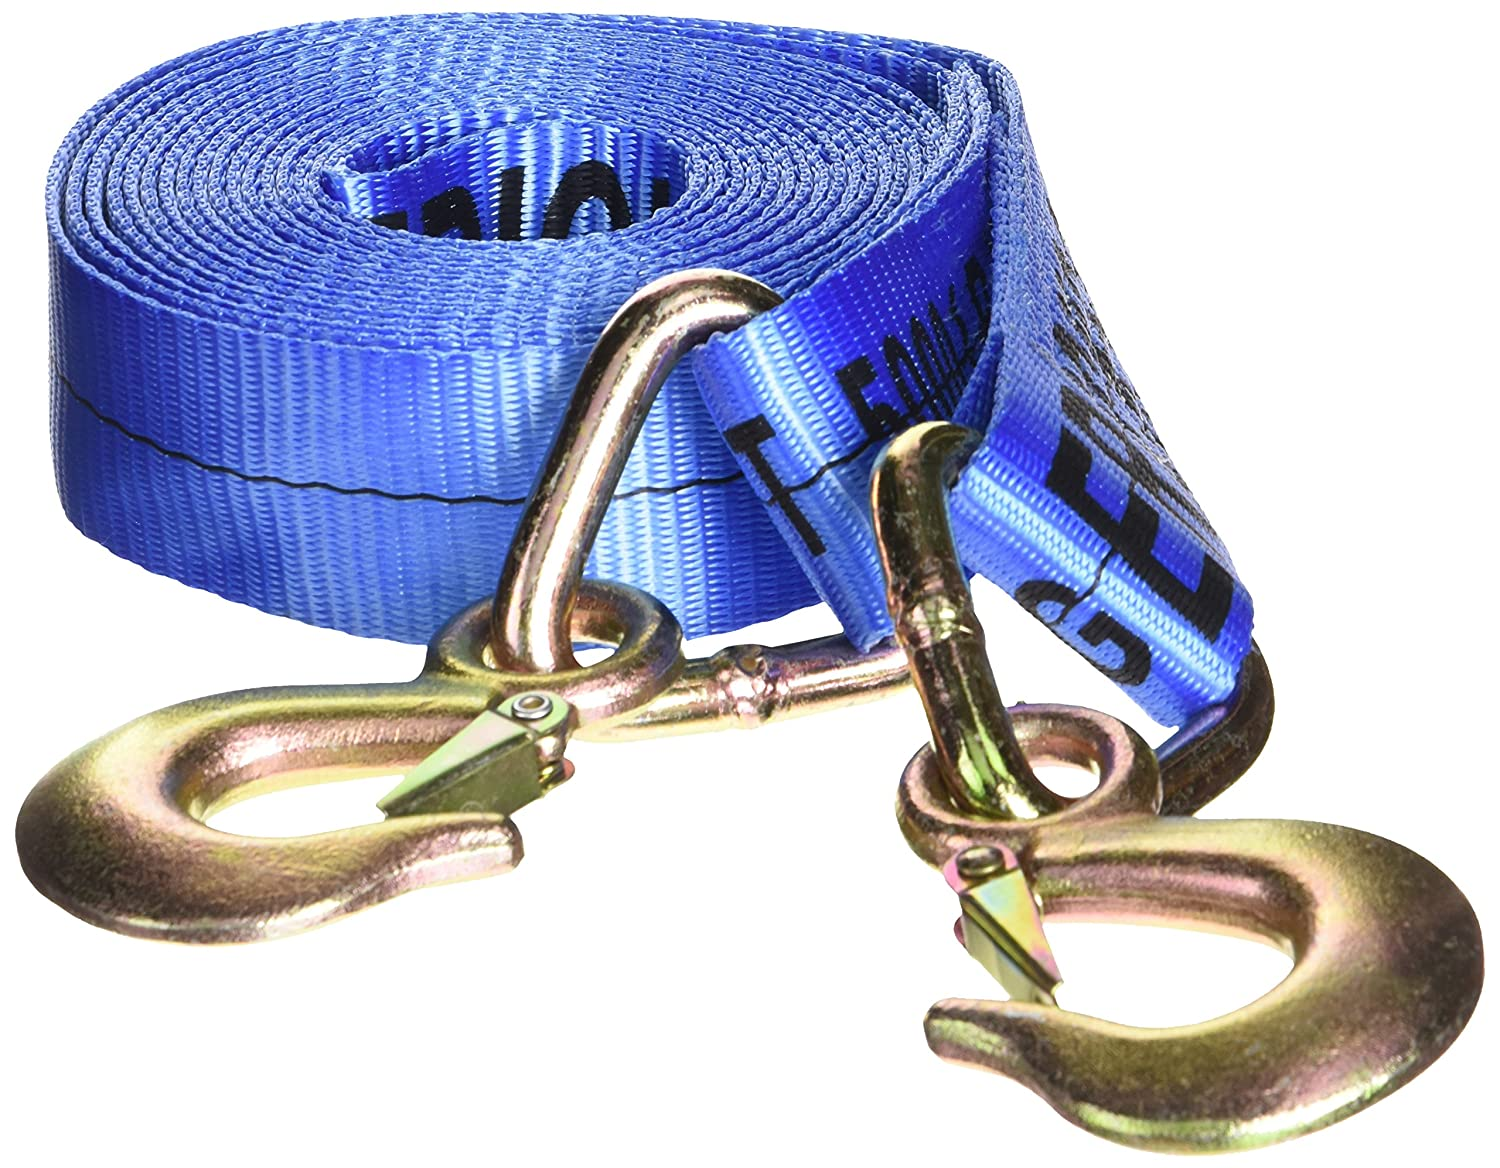 Erickson 09301 2-Inch x 20-Inch Tow Strap with Forged Safety Snap Hook Blue